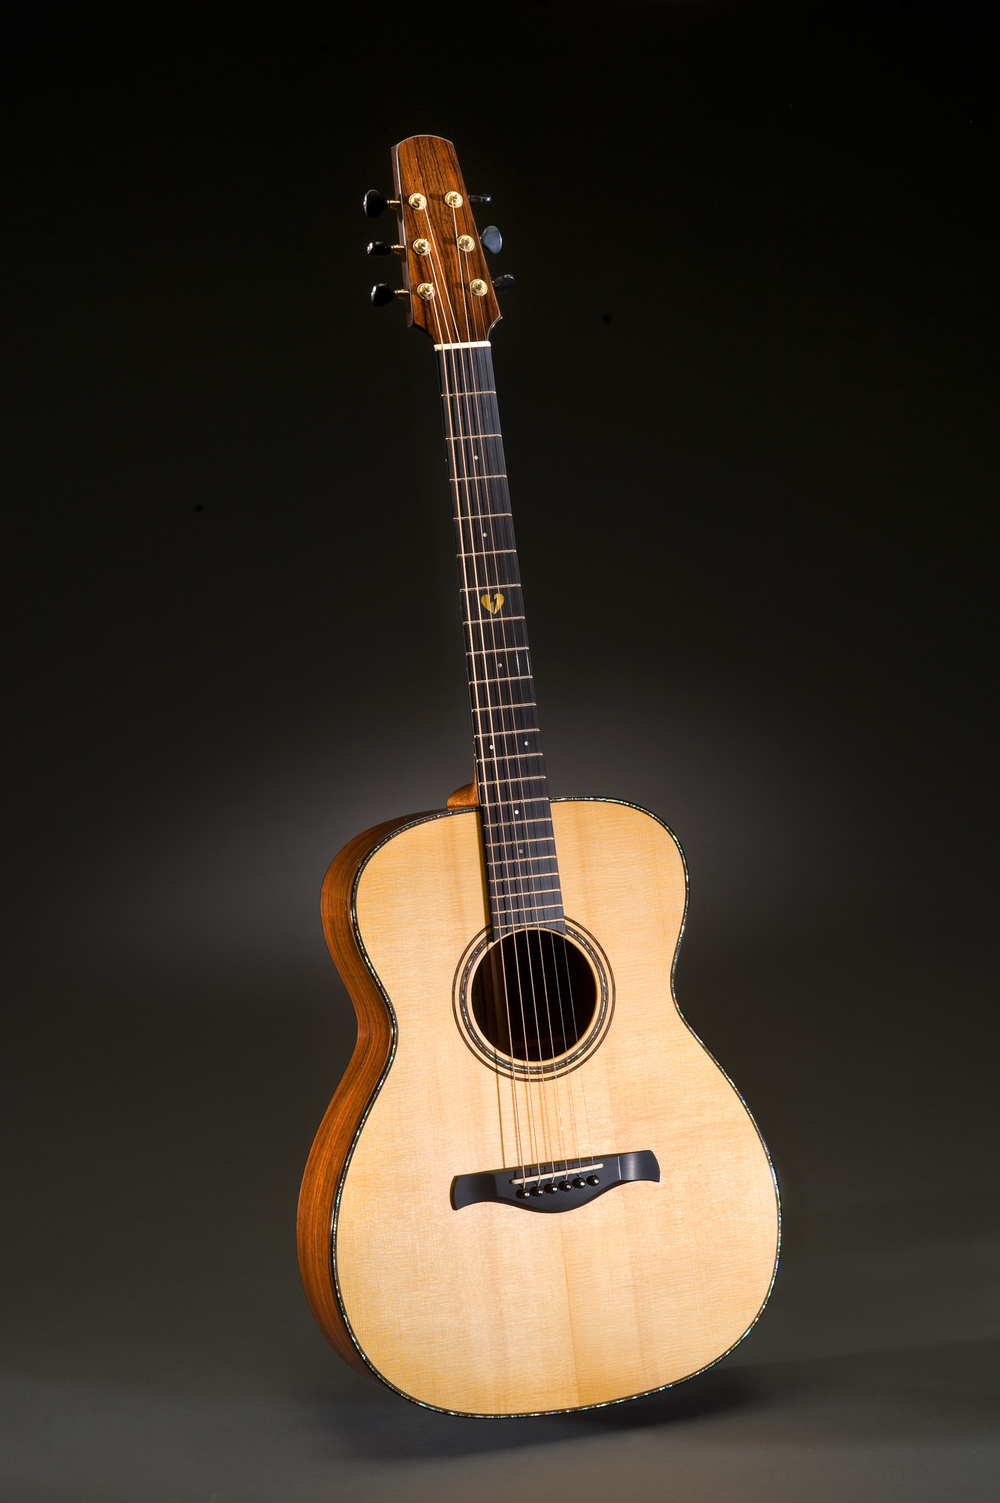 Traugott Model 00 Brazilian John Mayer guitar